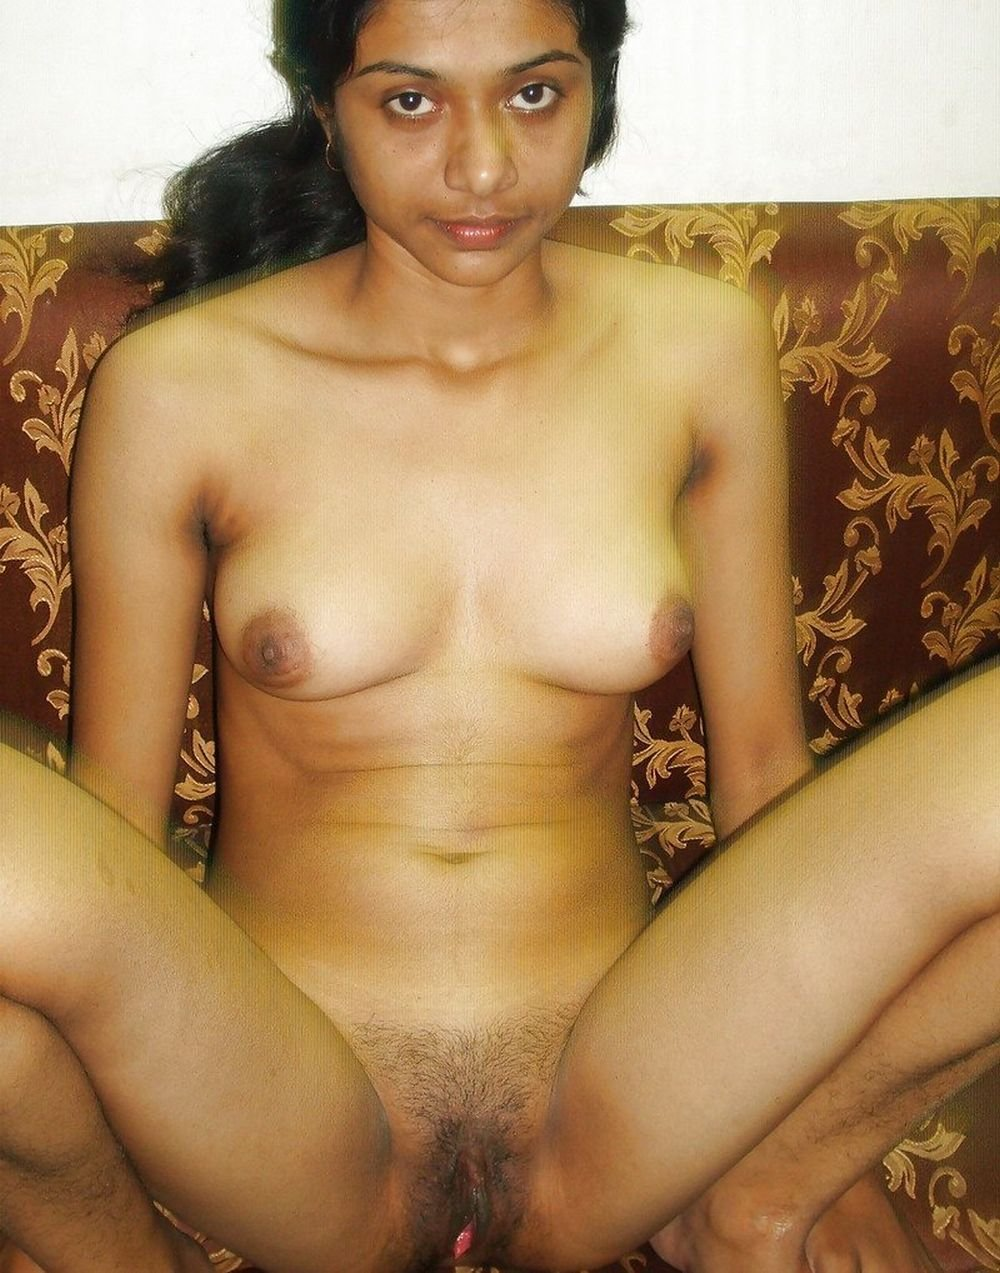 hijab girls xnxx